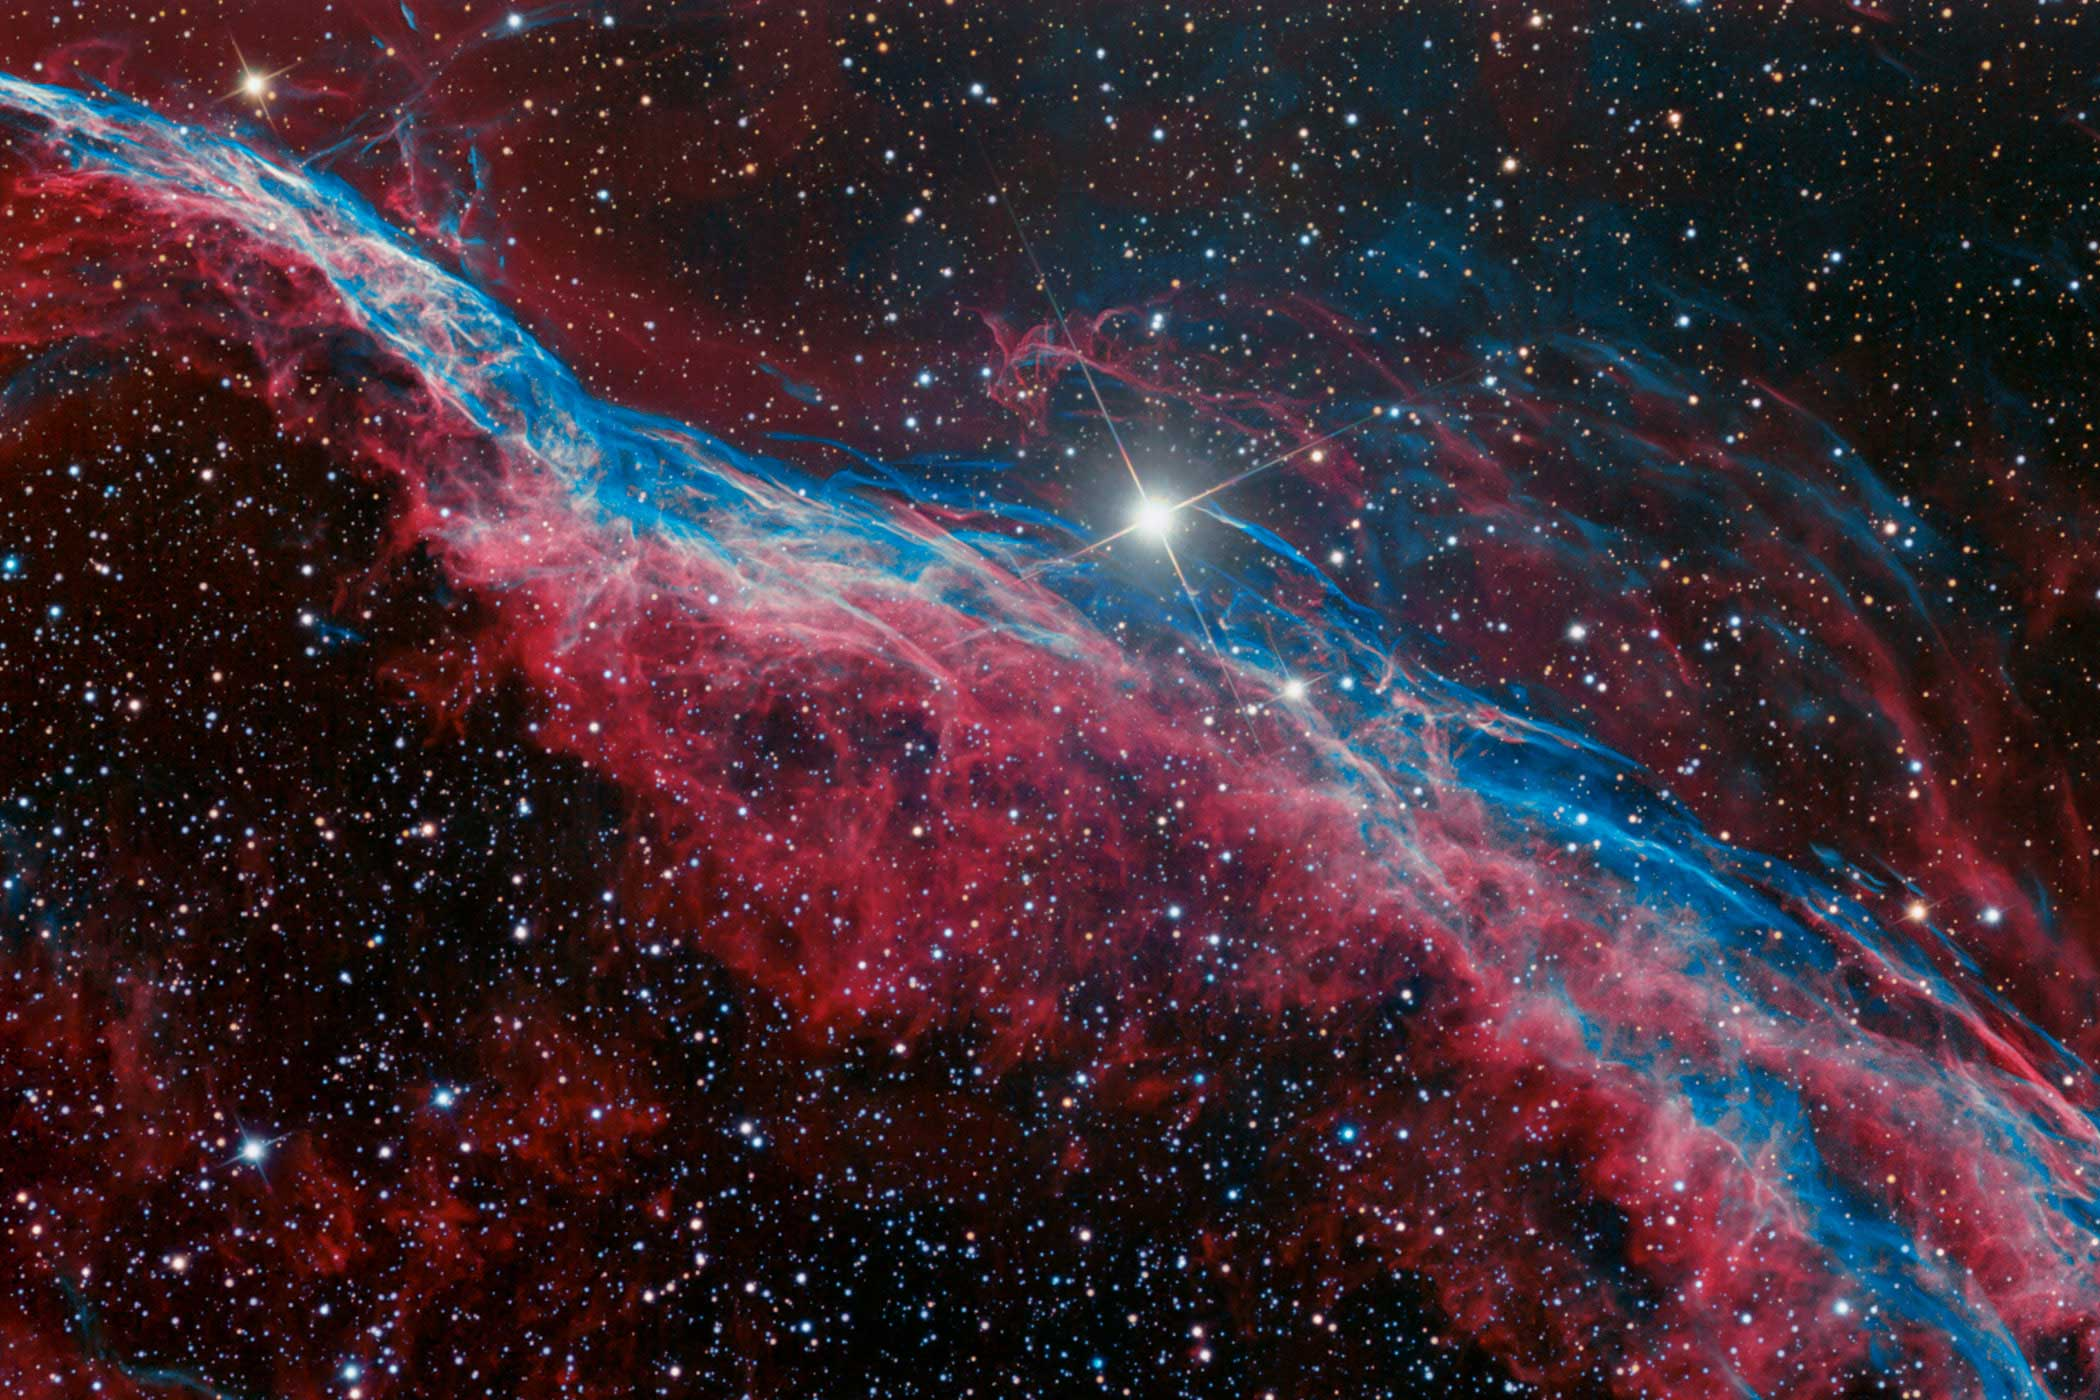 Part of the Veil Nebula, the Witch's Broom is the glowing debris from a supernova explosion. It's what's left over after the violent death of a massive star. Although the supernova occurred several thousand years ago, the gaseous debris is still expanding outwards, producing this vast cloud-like structure.